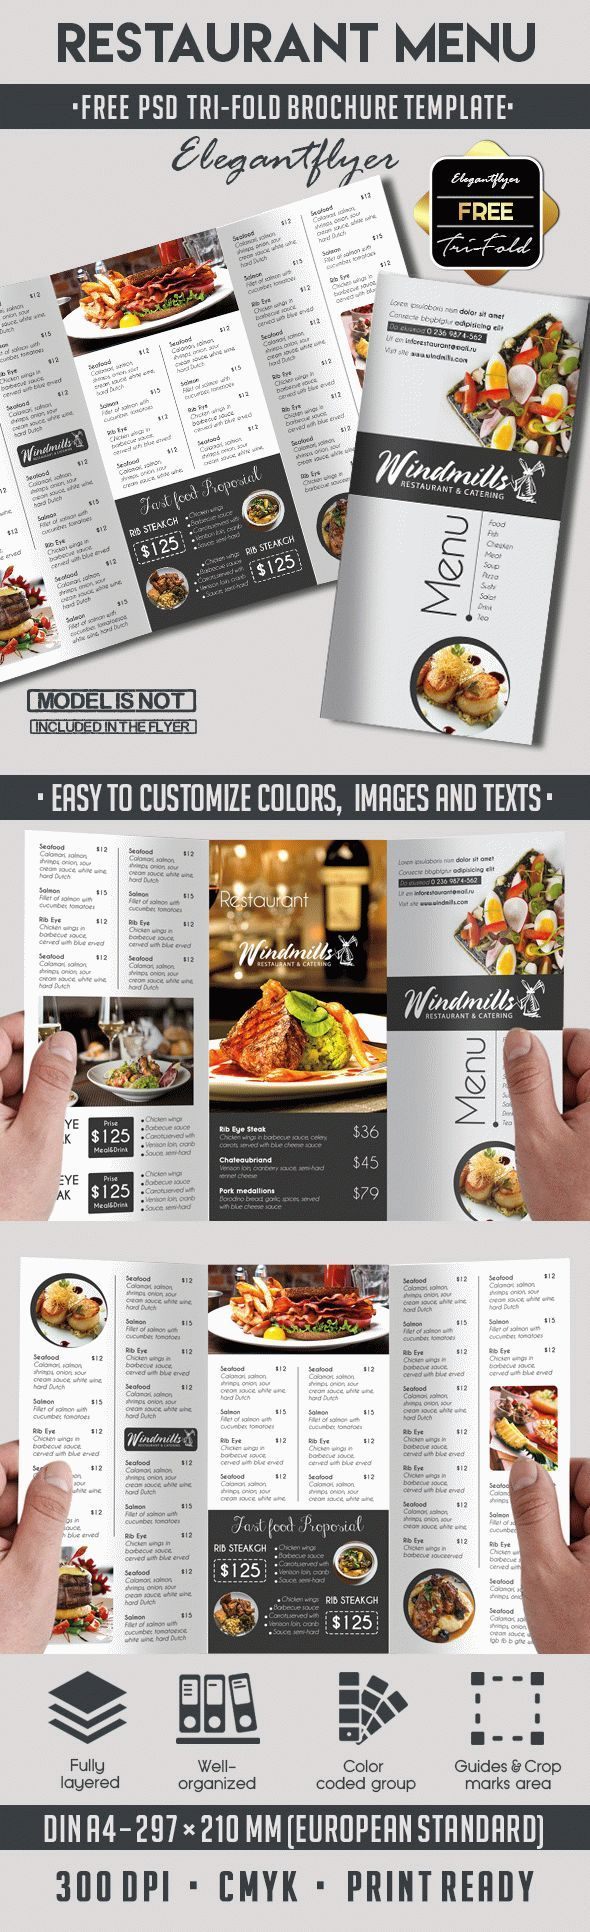 Restaurant Menu Free Template | Brochure template, Tri fold and ...